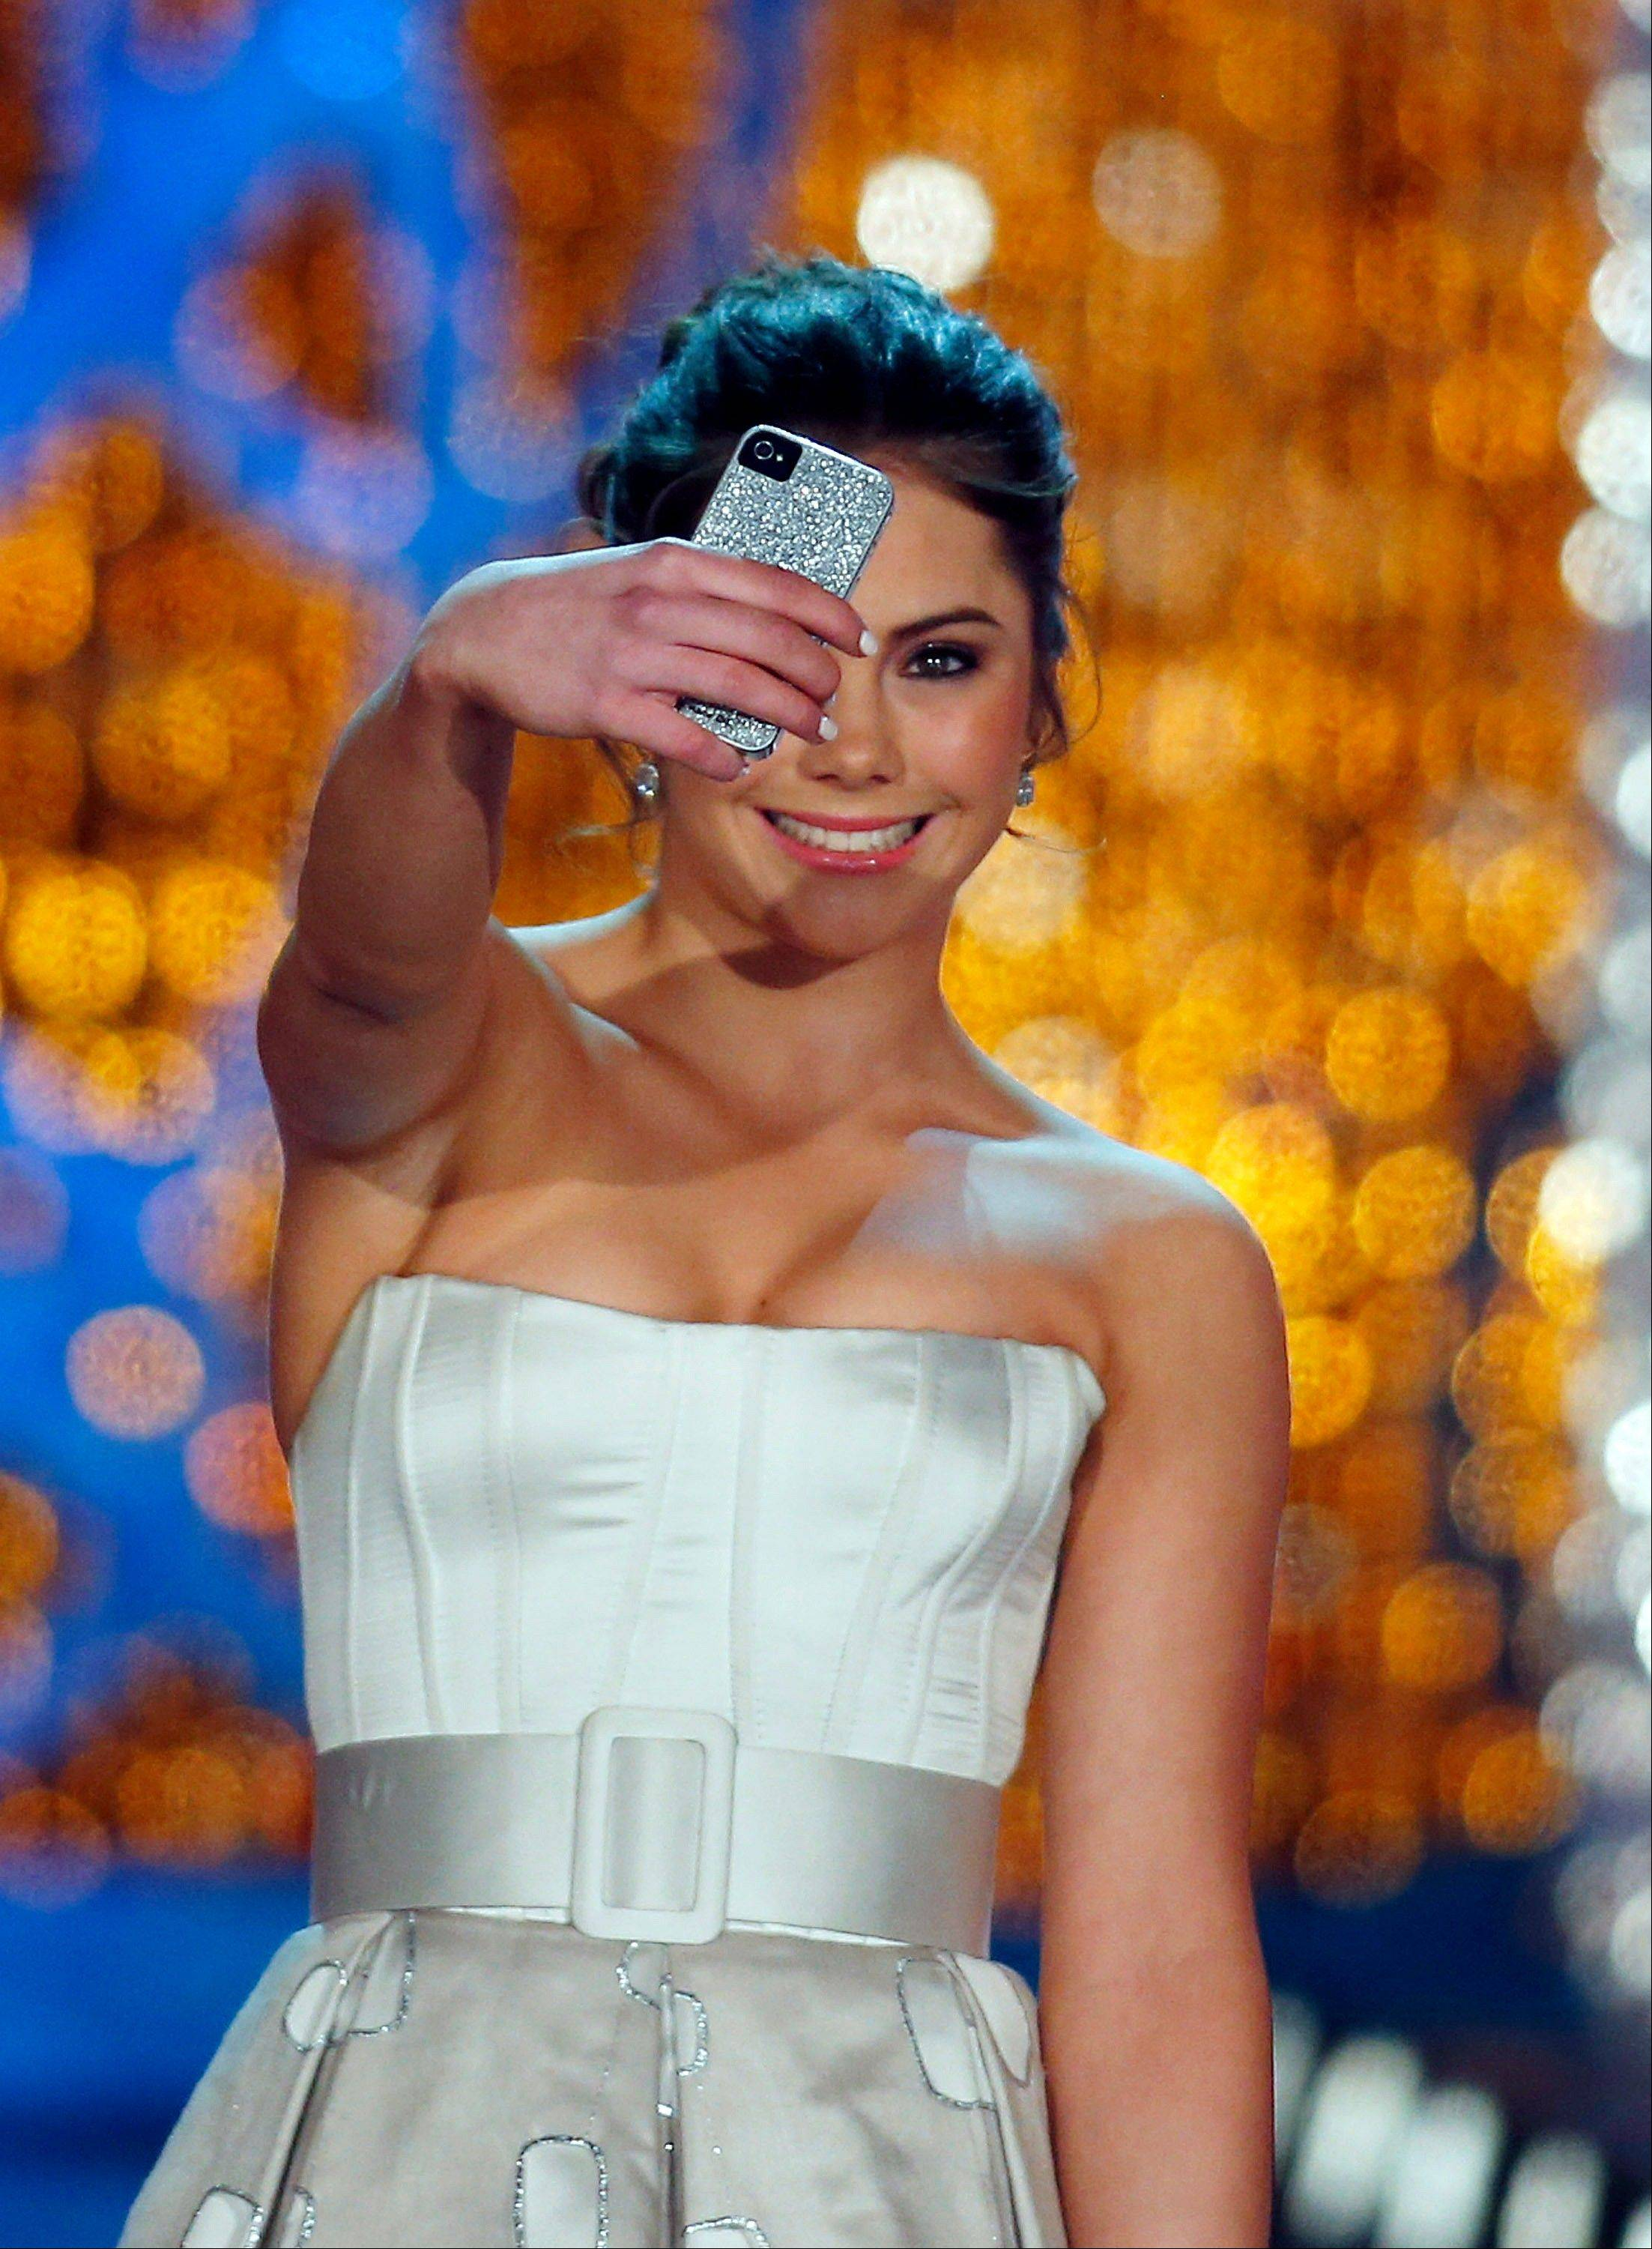 Miss America judge McKayla Maroney photographs herself onstage before the pageant on Saturday, Jan. 12, 2013, in Las Vegas.